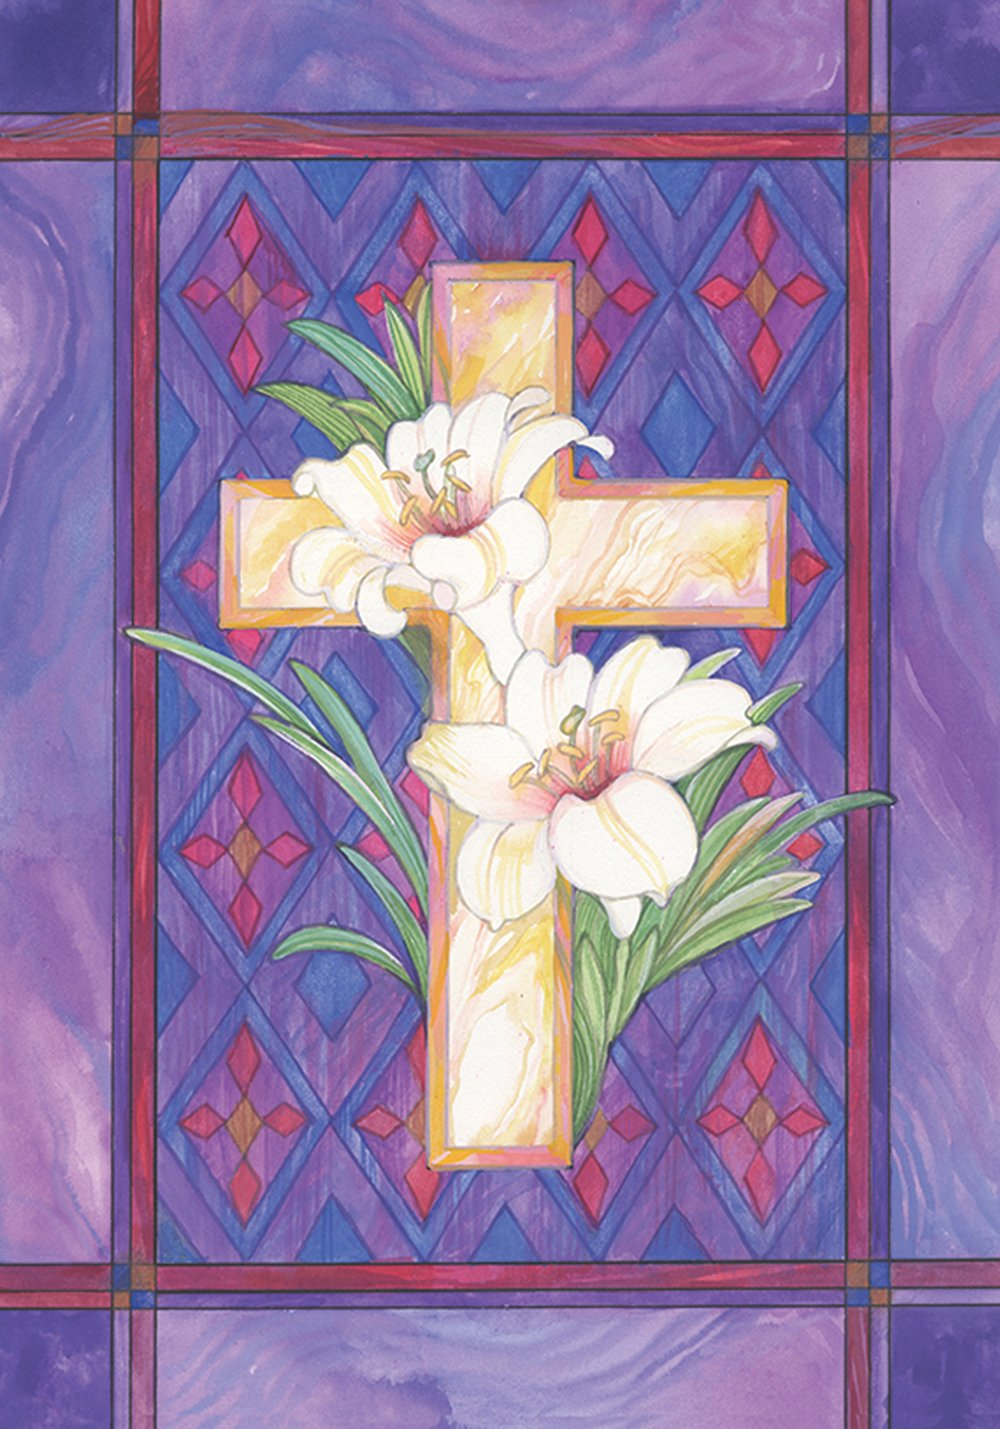 Toland Home Garden Lily and Cross 12.5 x 18 Inch Decorative Stained Glass Easter Flower Garden Flag